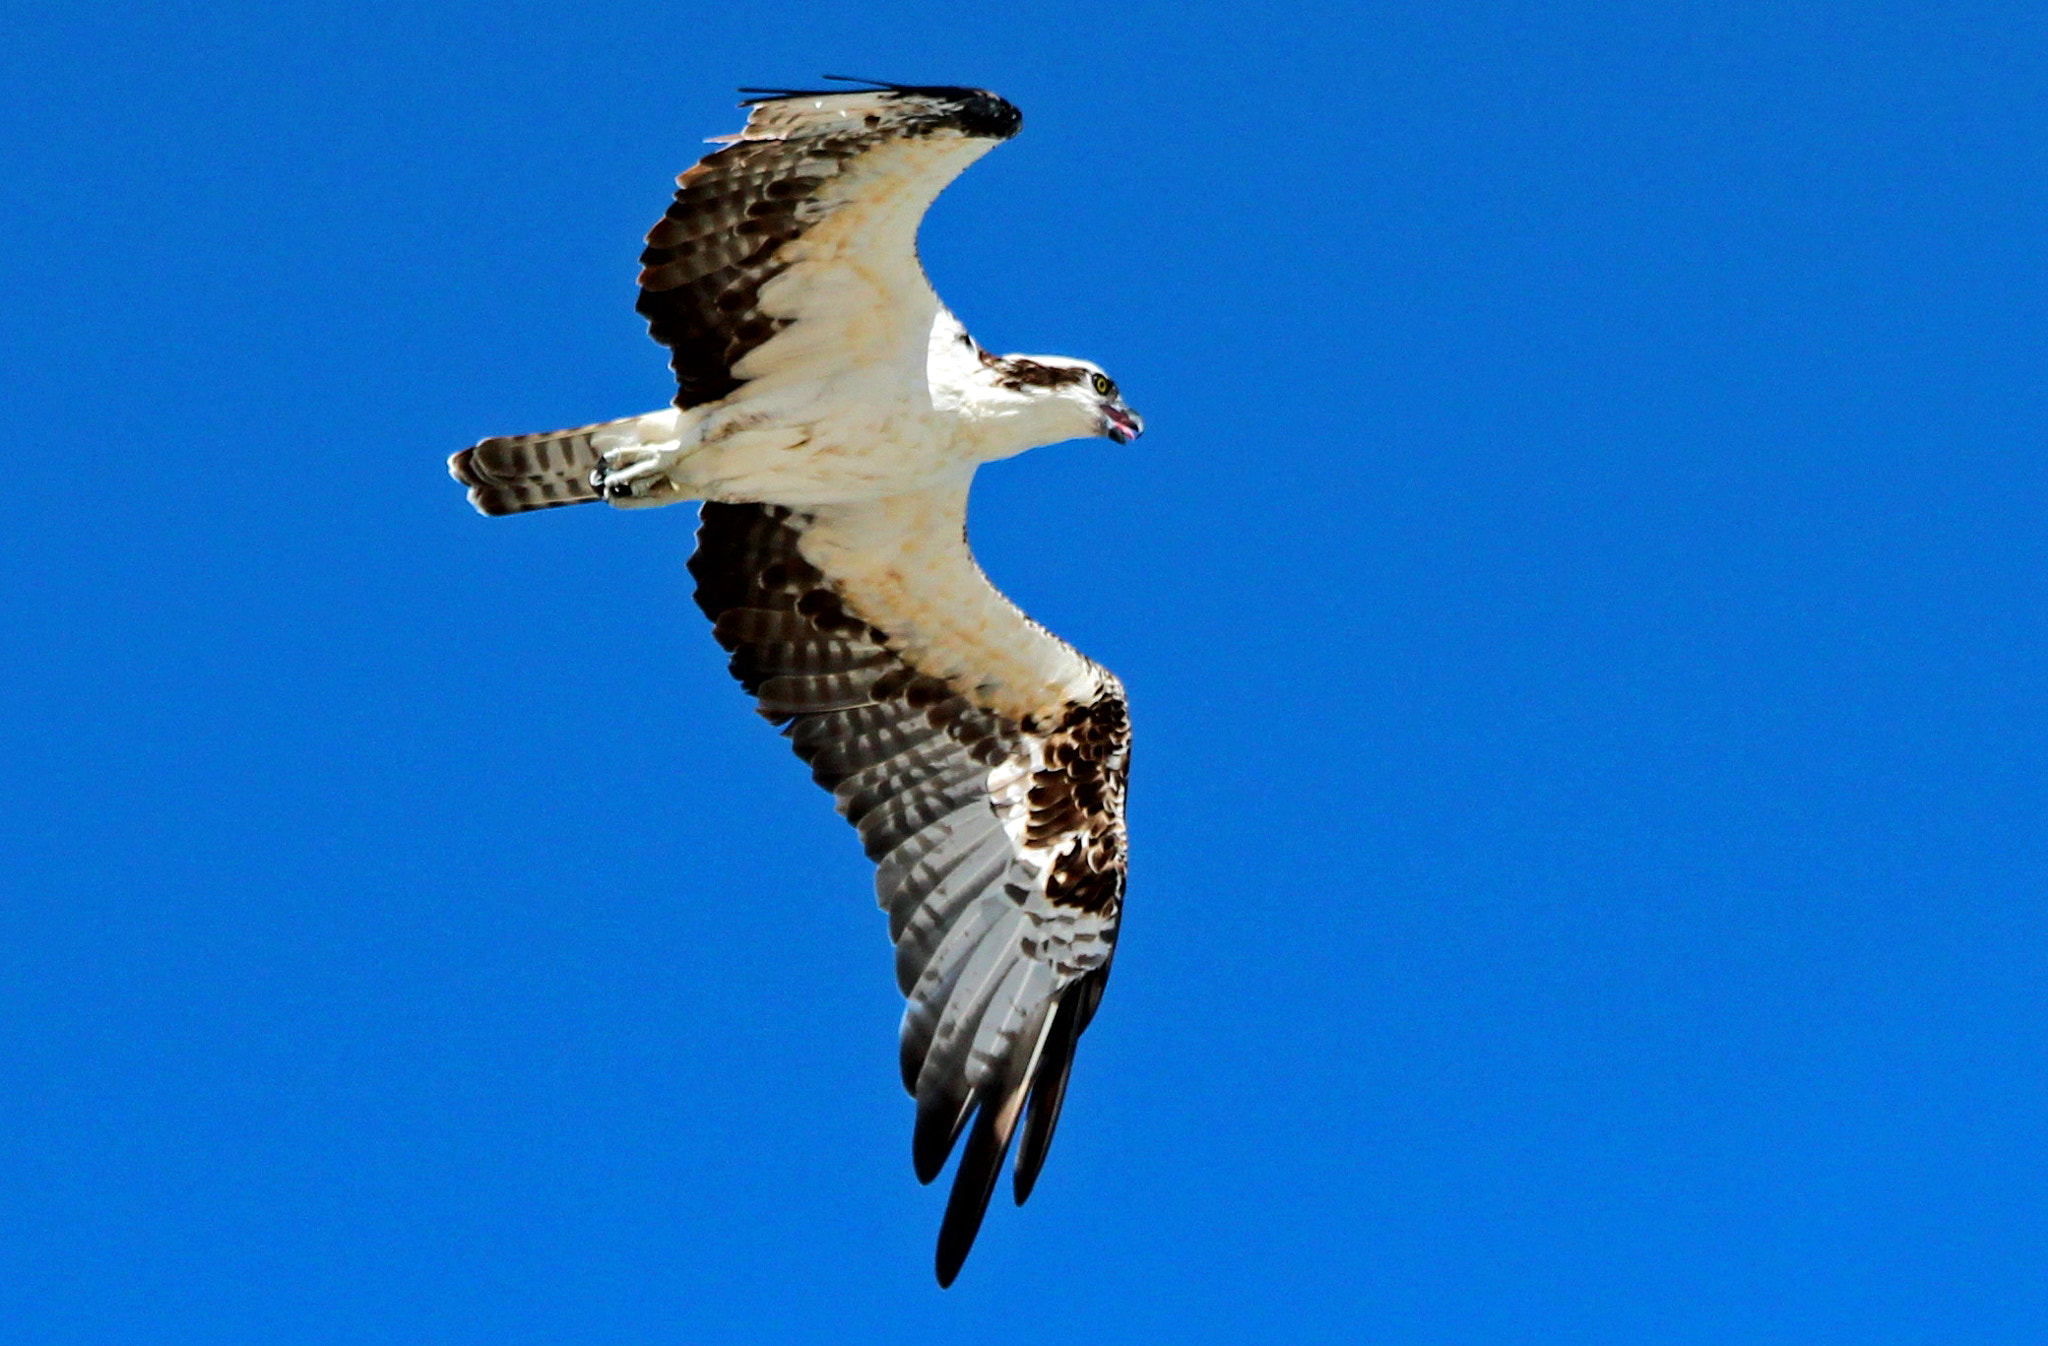 Photograph OSPREY BY THE SEA by robin ulery on 500px